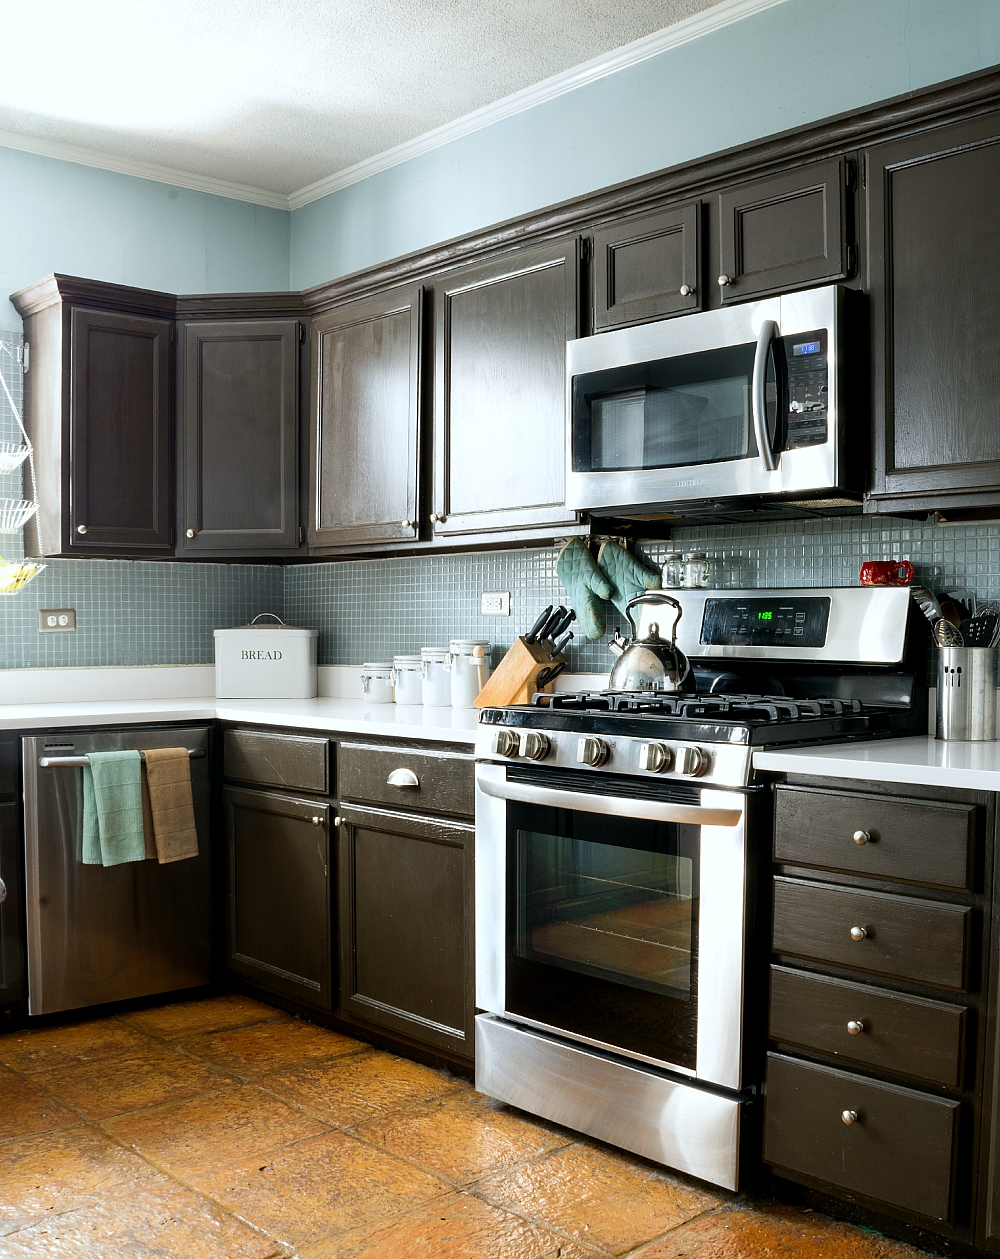 how to paint builder grade cabinets,Contractor Grade Kitchen Cabinets,Kitchen cabinets